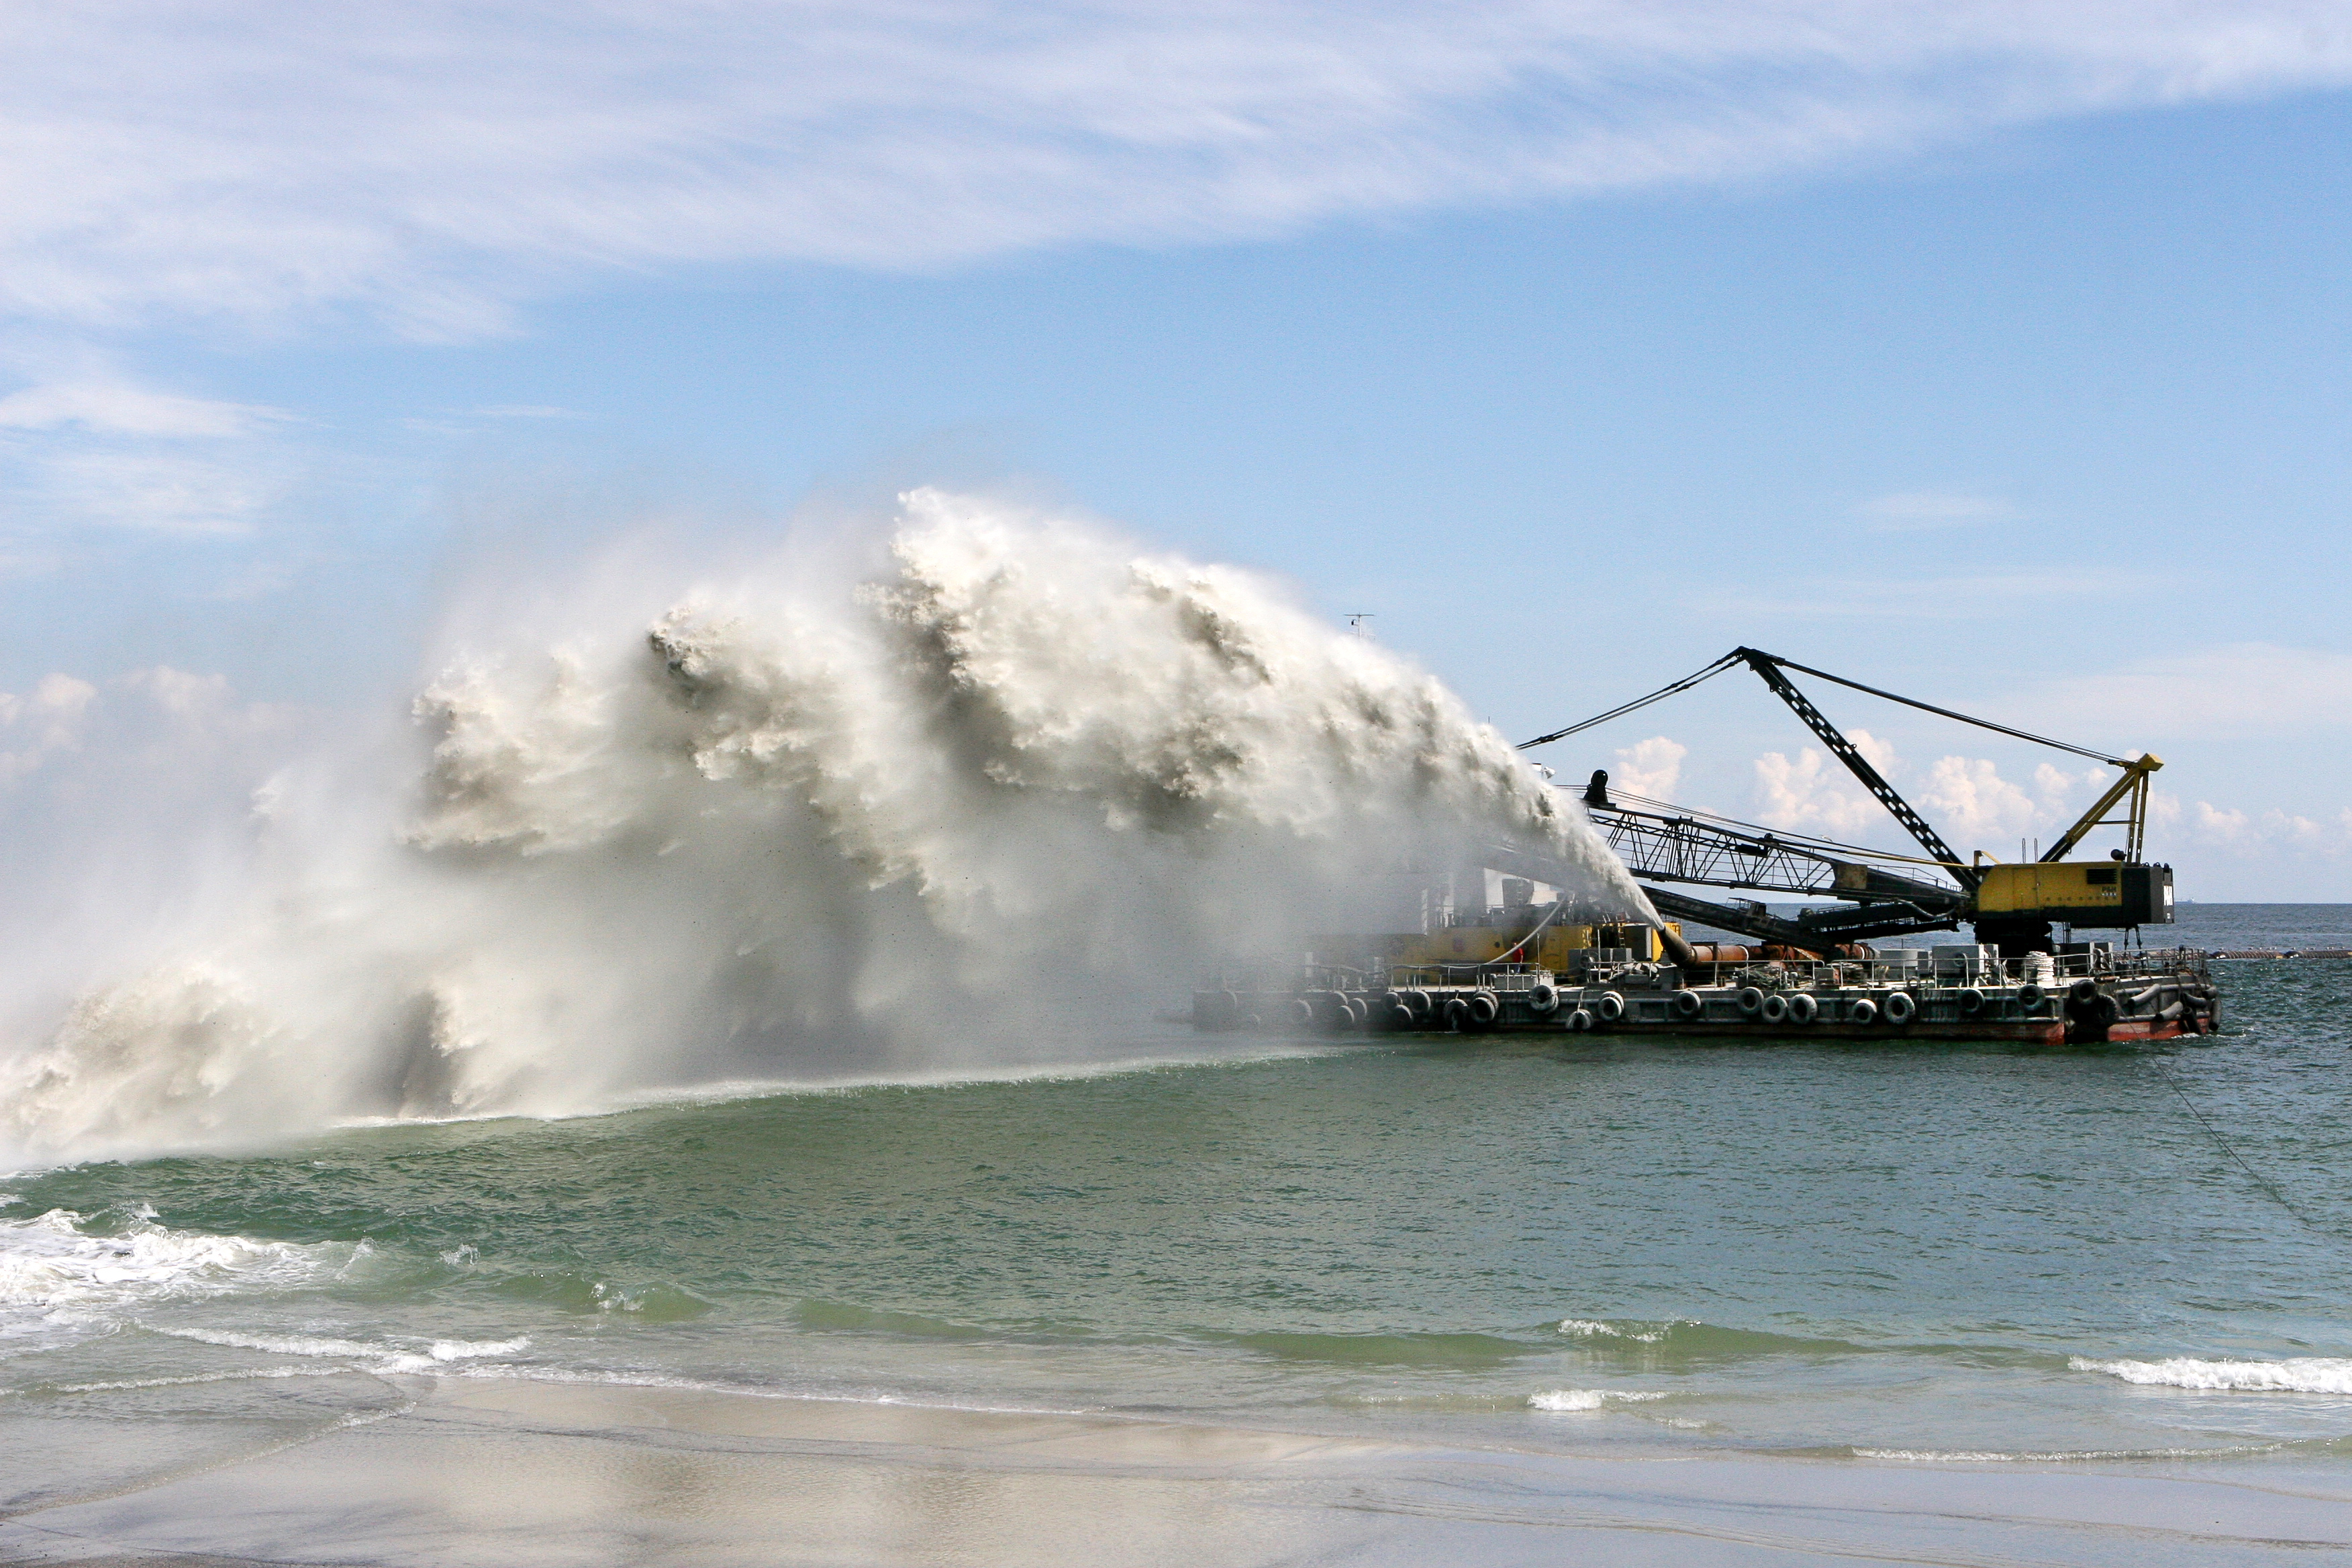 Dredging is a valuable infrastructure investment